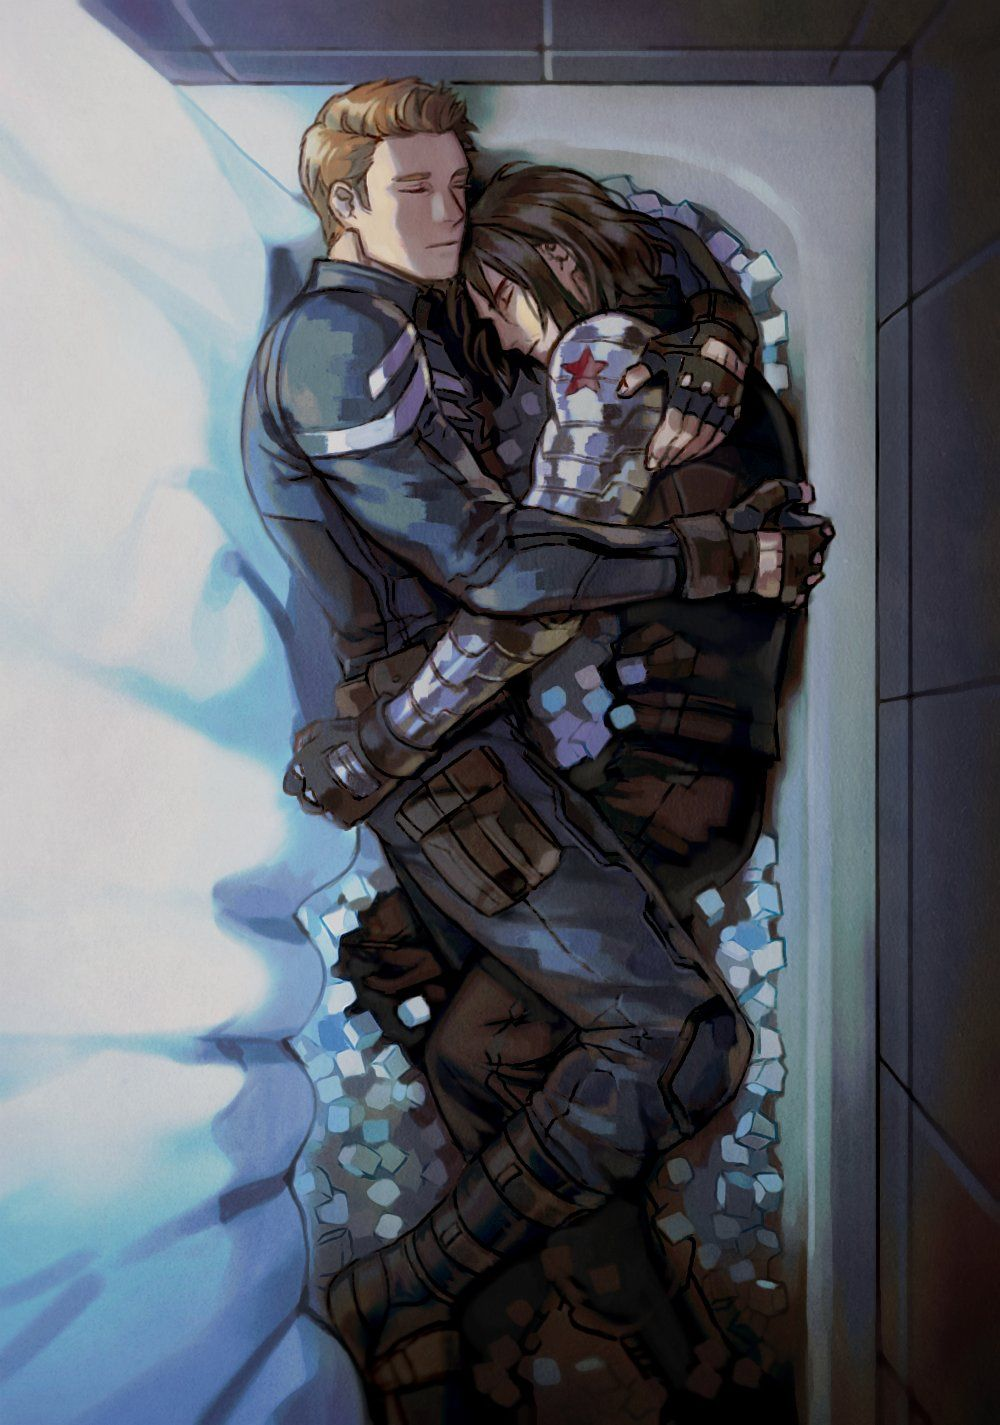 Pin by Elena Jackson on Stucky | Marvel, Stucky, Steve rogers bucky